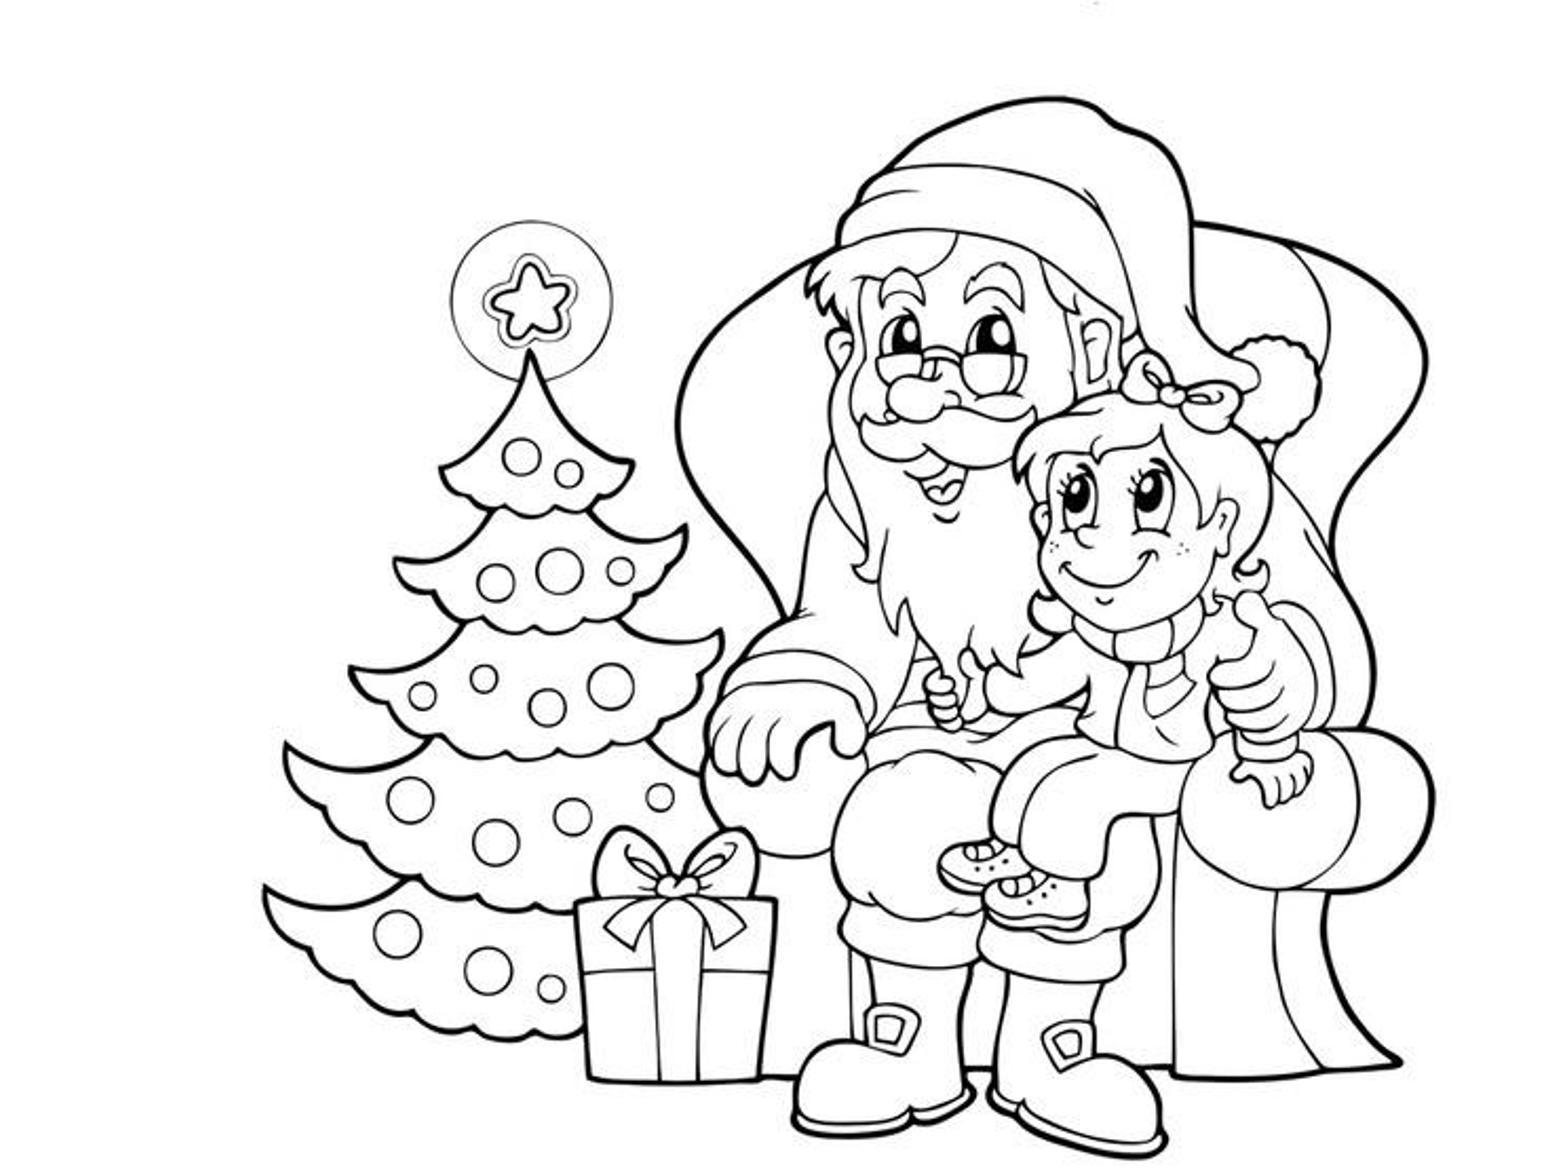 1553x1176 santa coloring pages for kids - Santa Claus Coloring Pictures For Kids